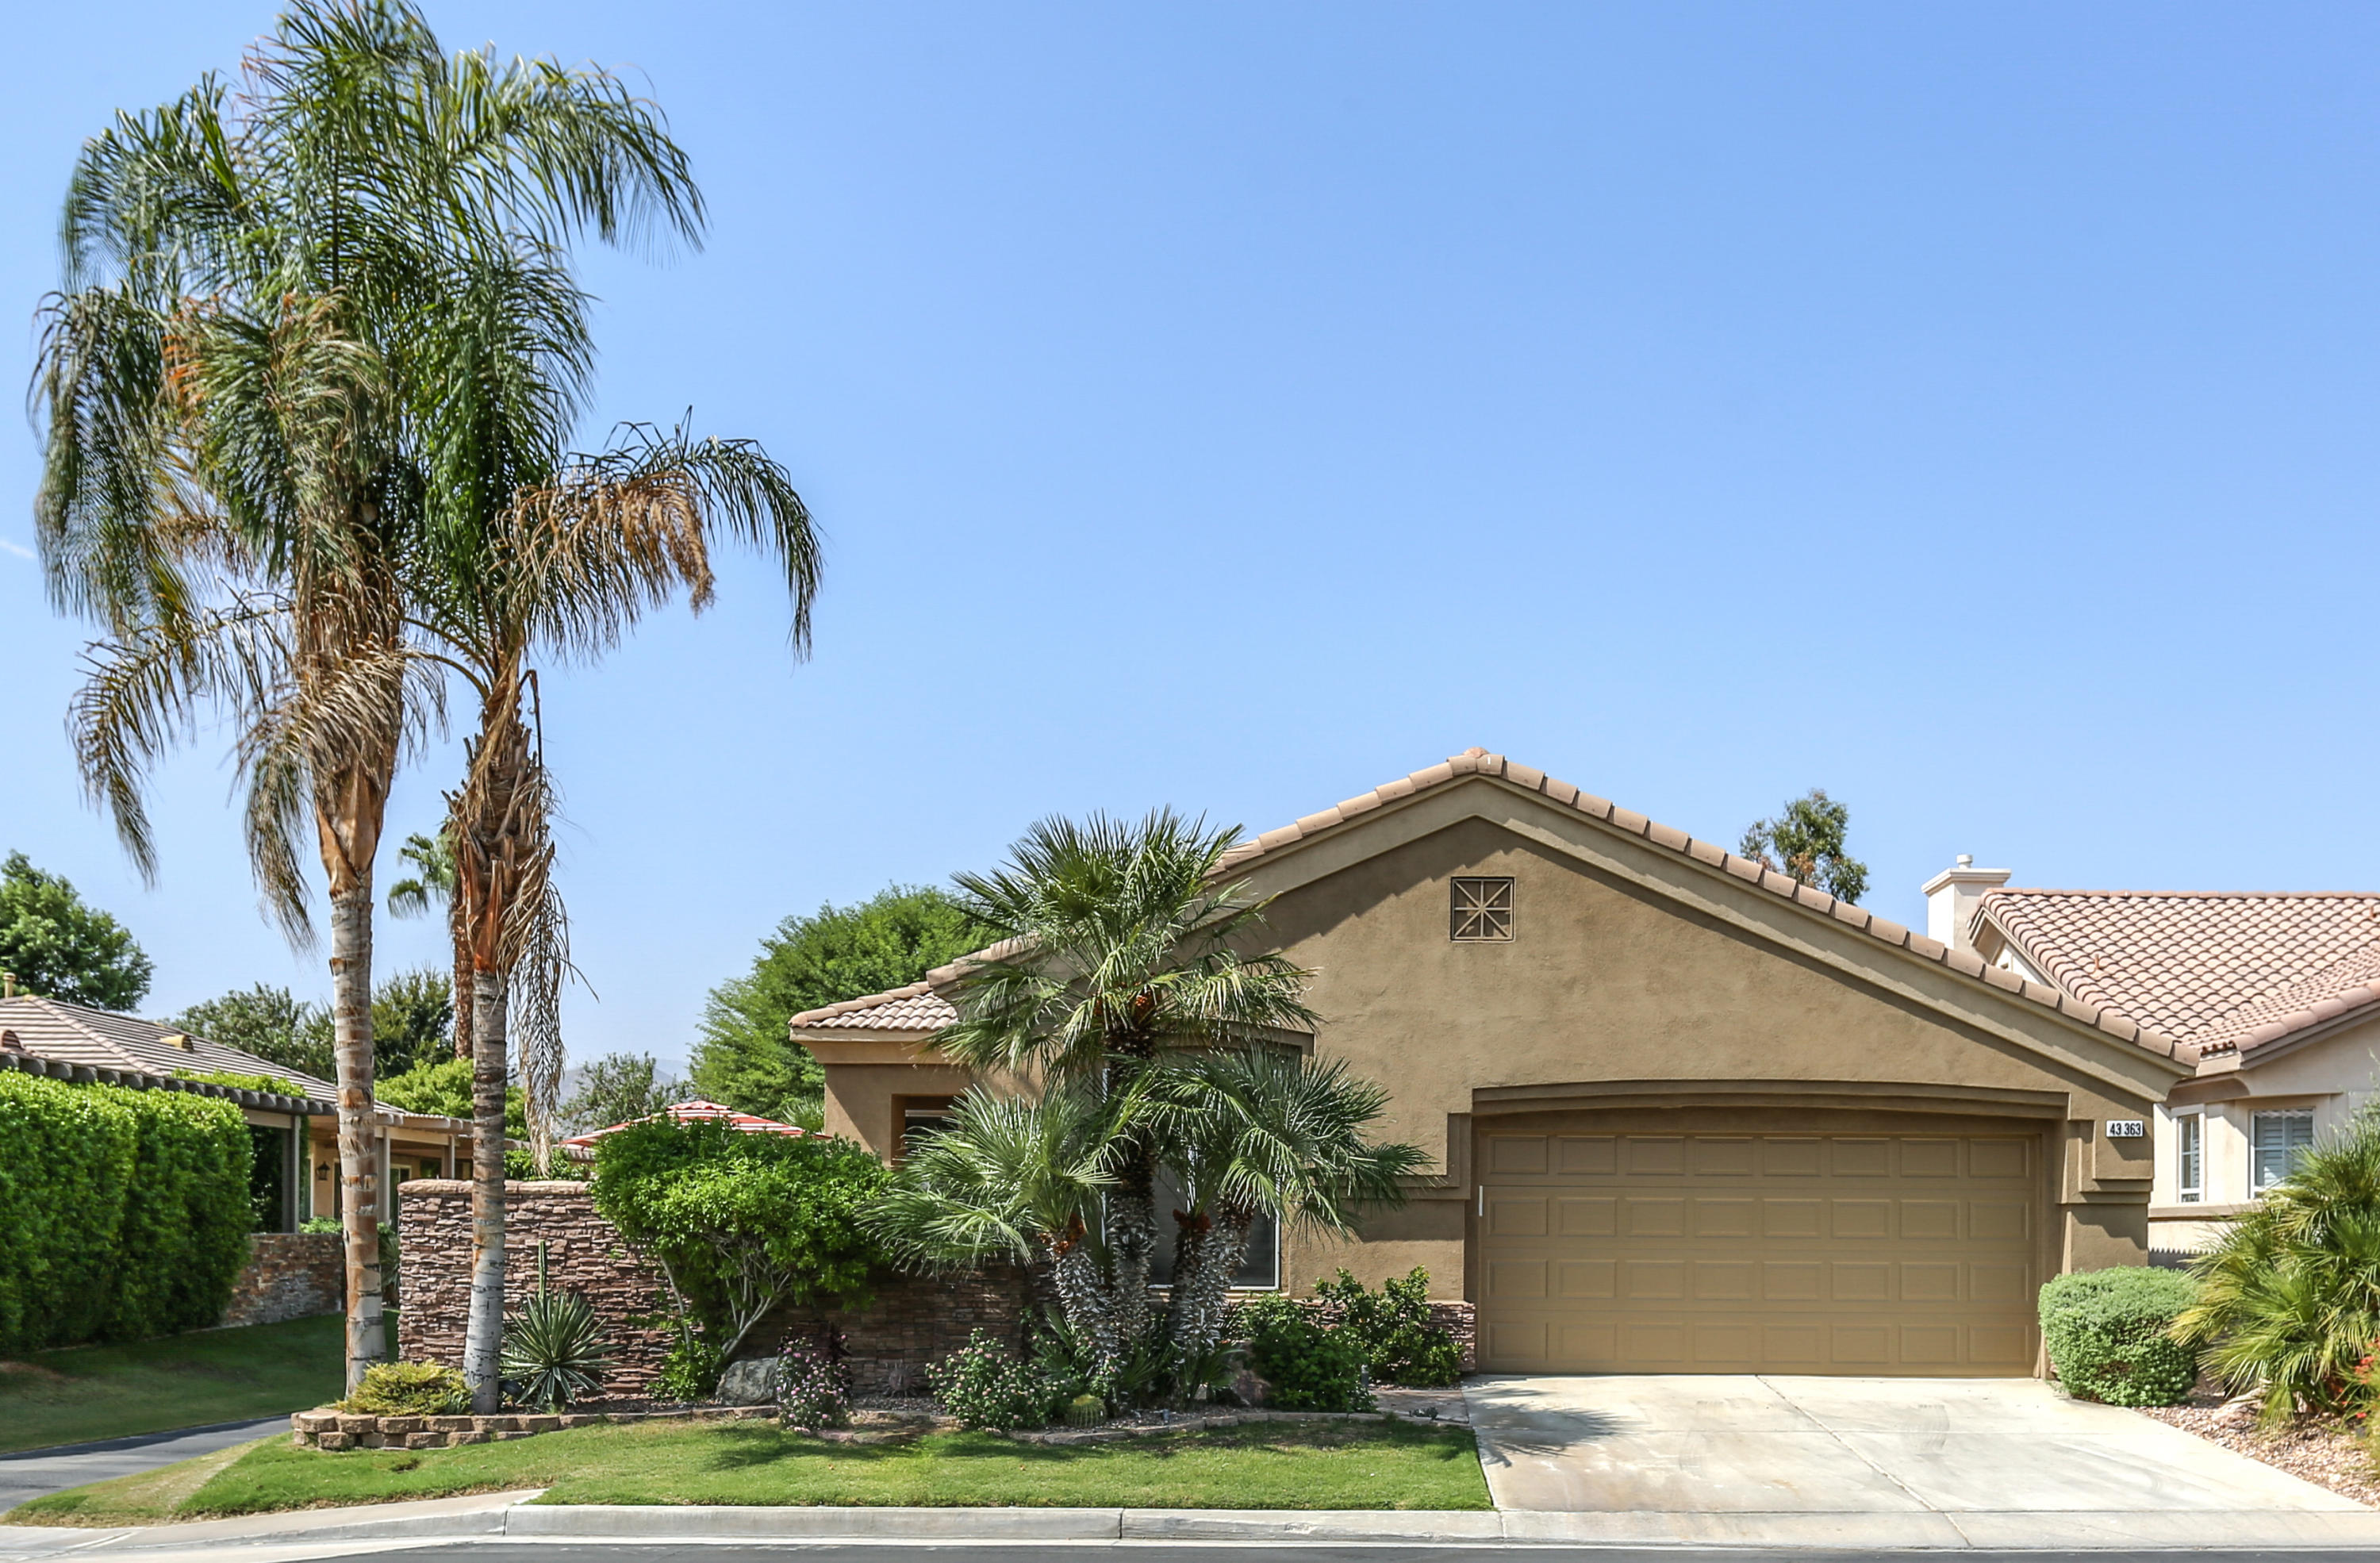 Photo of 43363 N Heritage Palms Drive, Indio, CA 92201